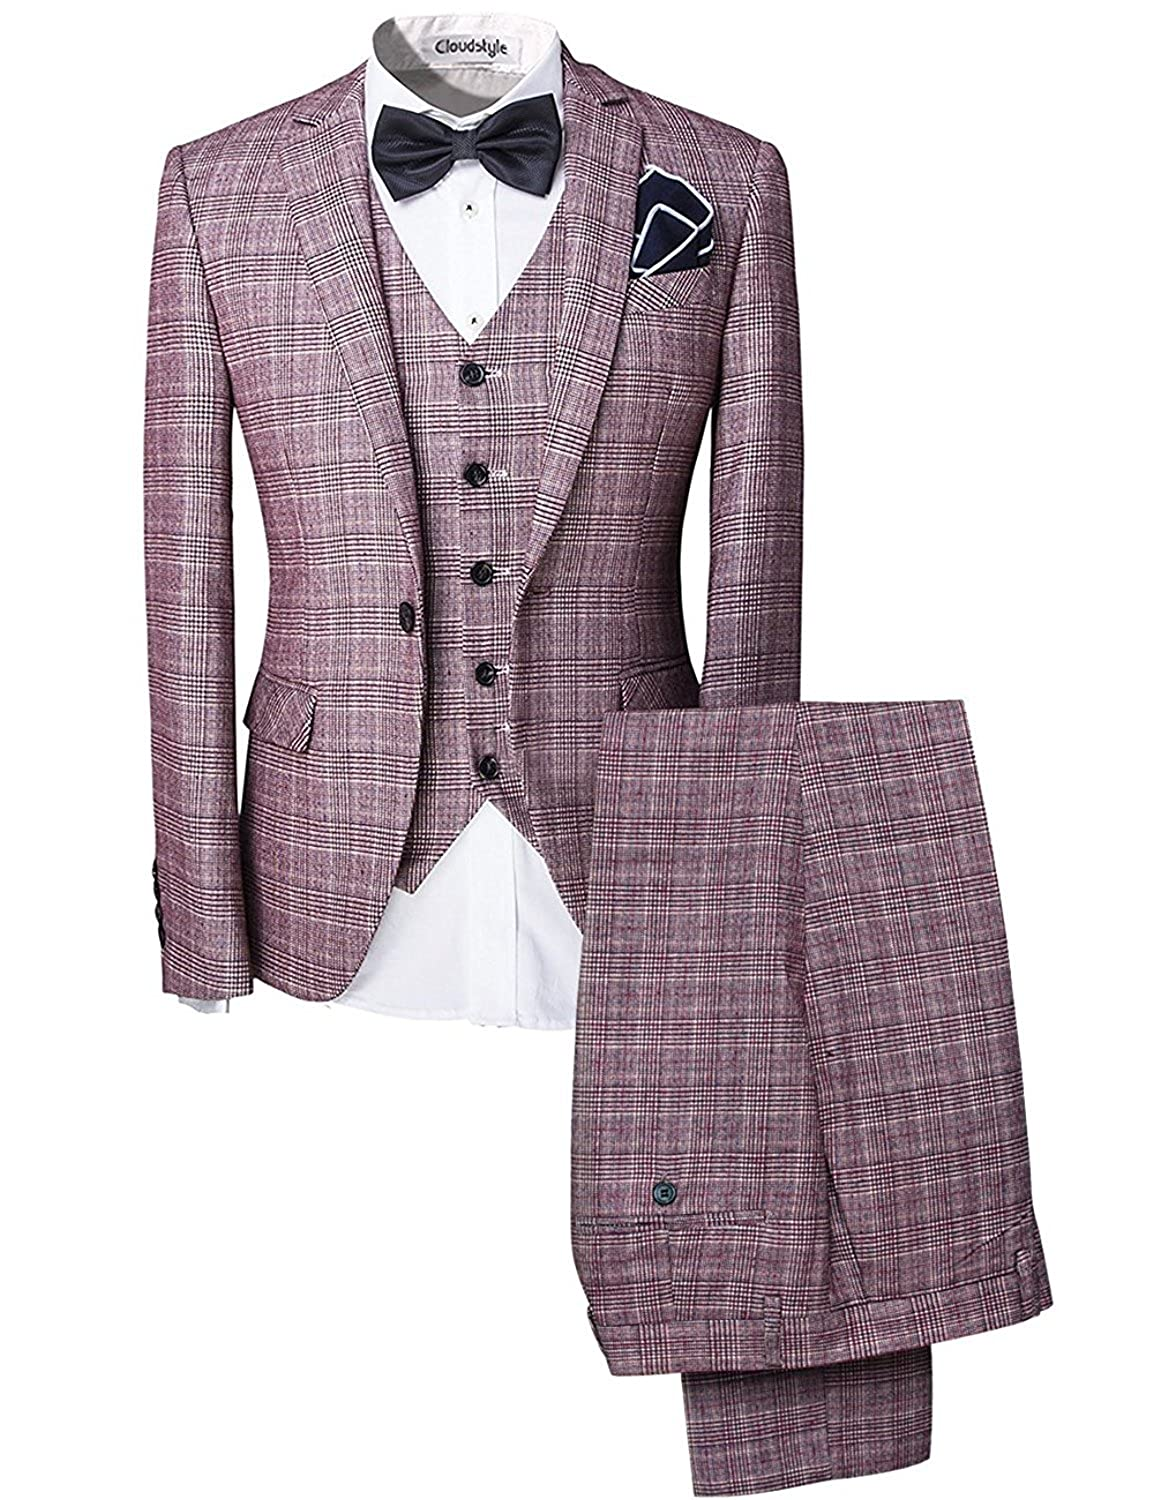 1920s Fashion for Men Cloudstyle Mens 3-Piece Suit One Button Plaid Dress Blazer Jacket & Vest & Trousers Set $95.99 AT vintagedancer.com